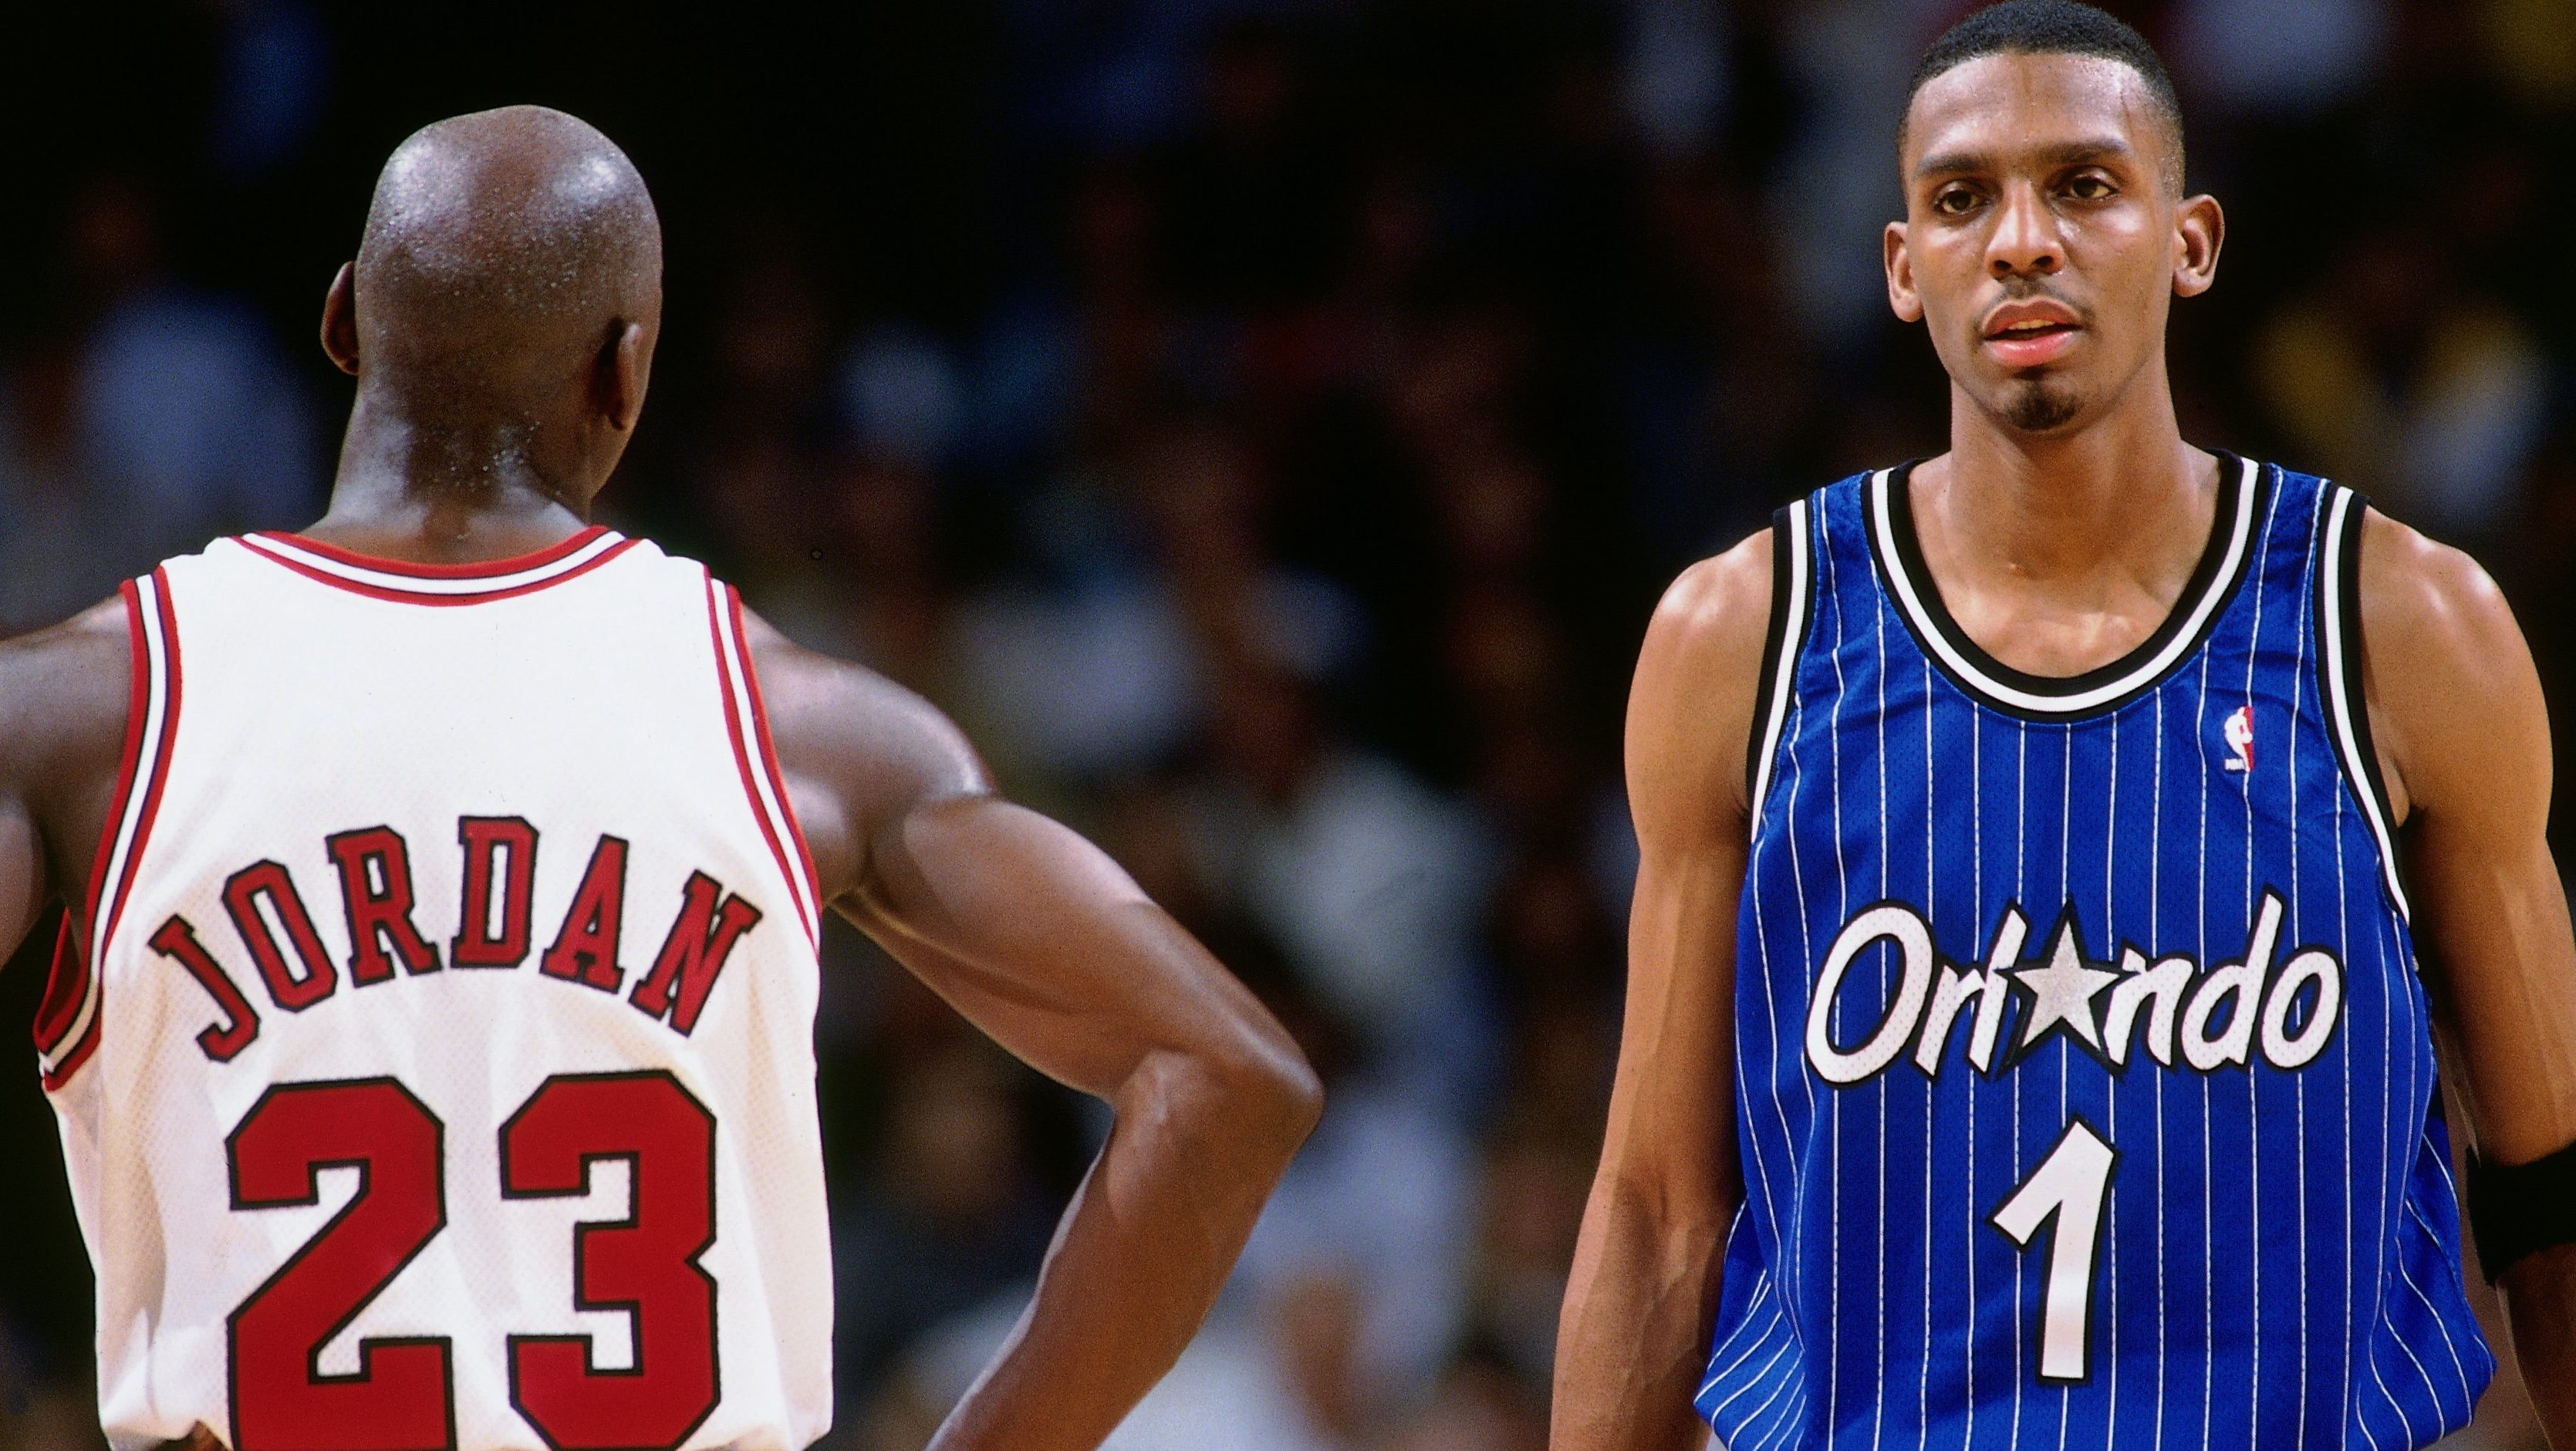 Penny Hardaway on the time Michael Jordan wore Air Flight Ones over his own Concord  11s